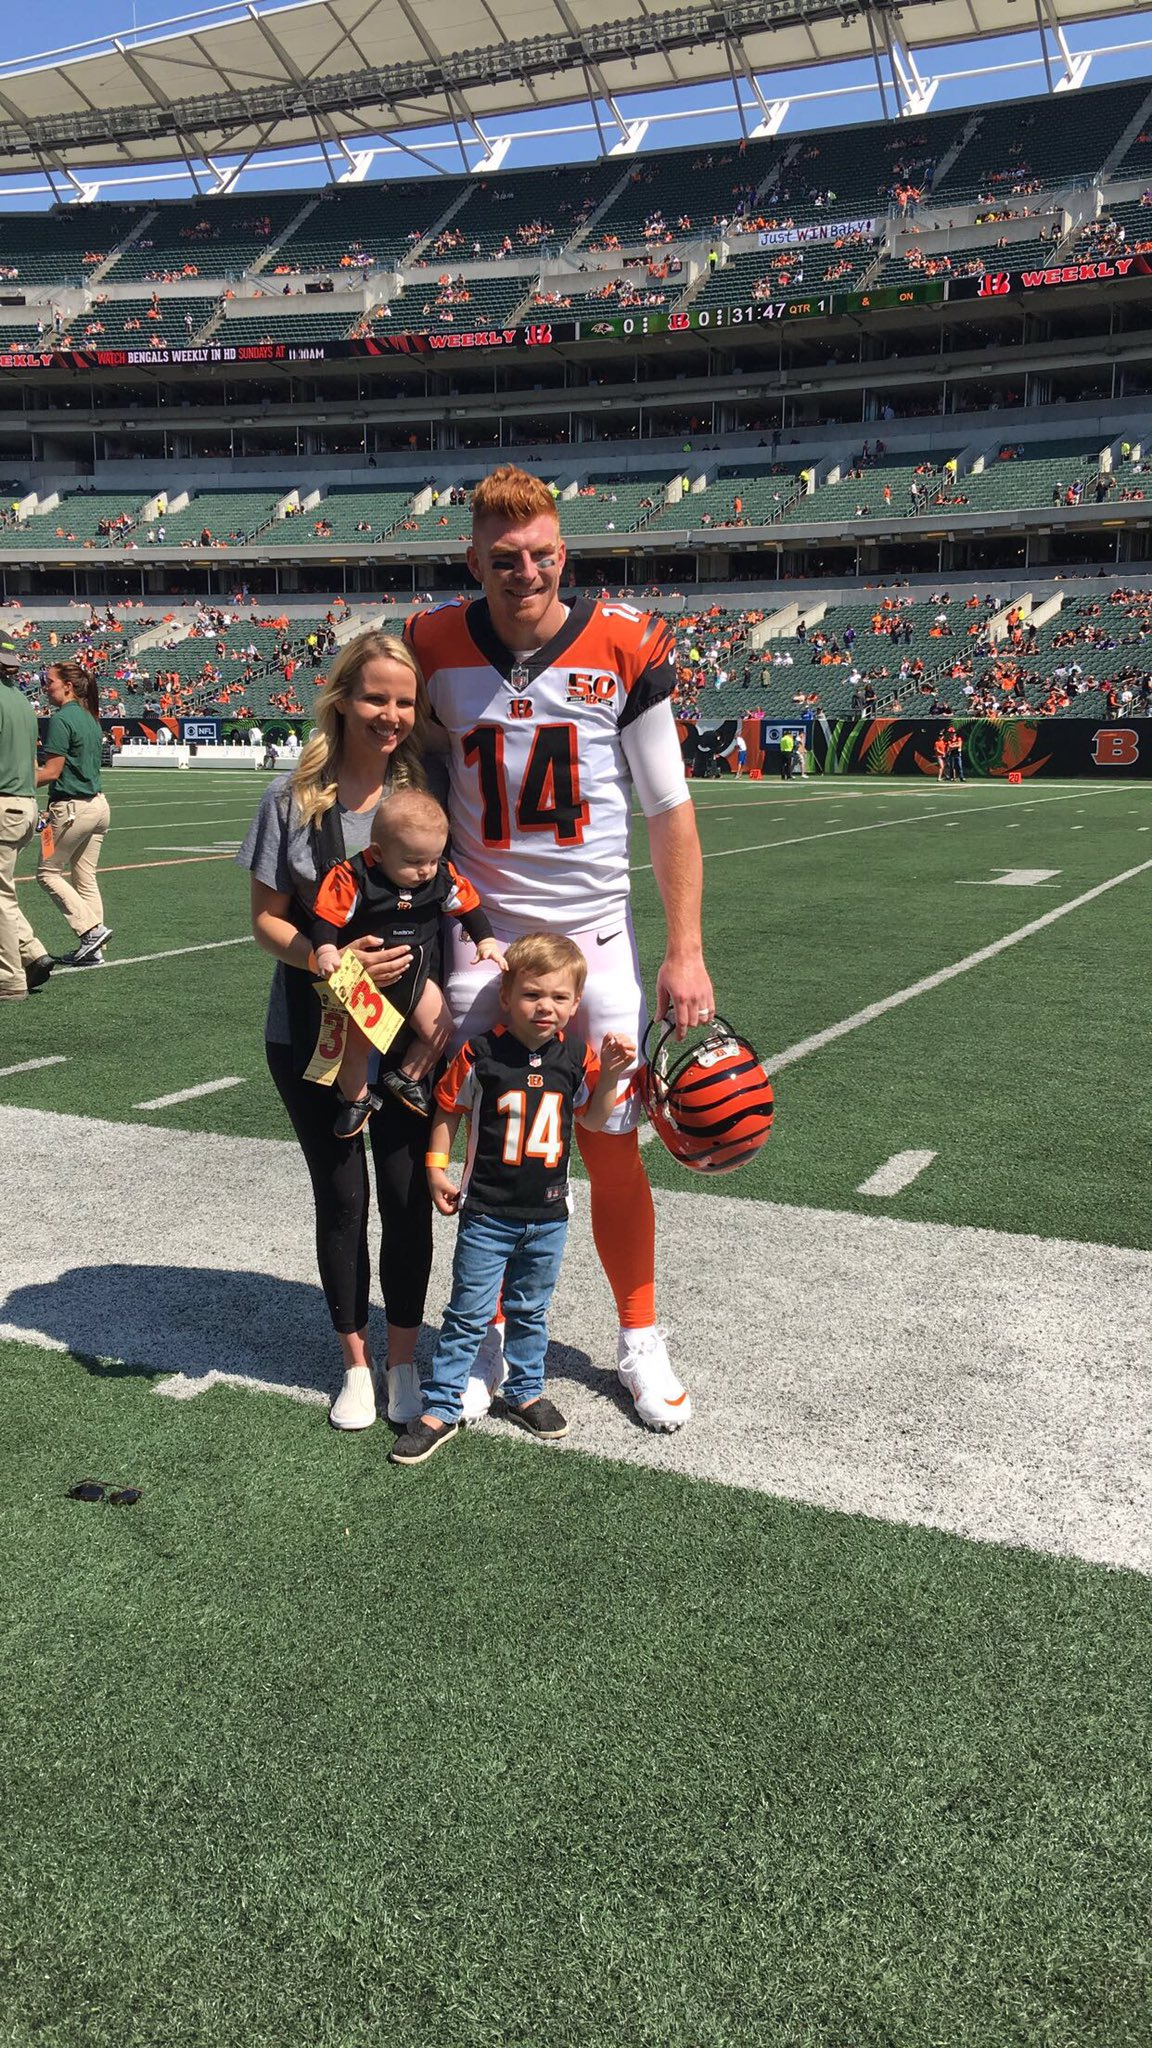 Football is Family @andydalton14 #Bengals50 https://t.co/JxZIfwOgbZ